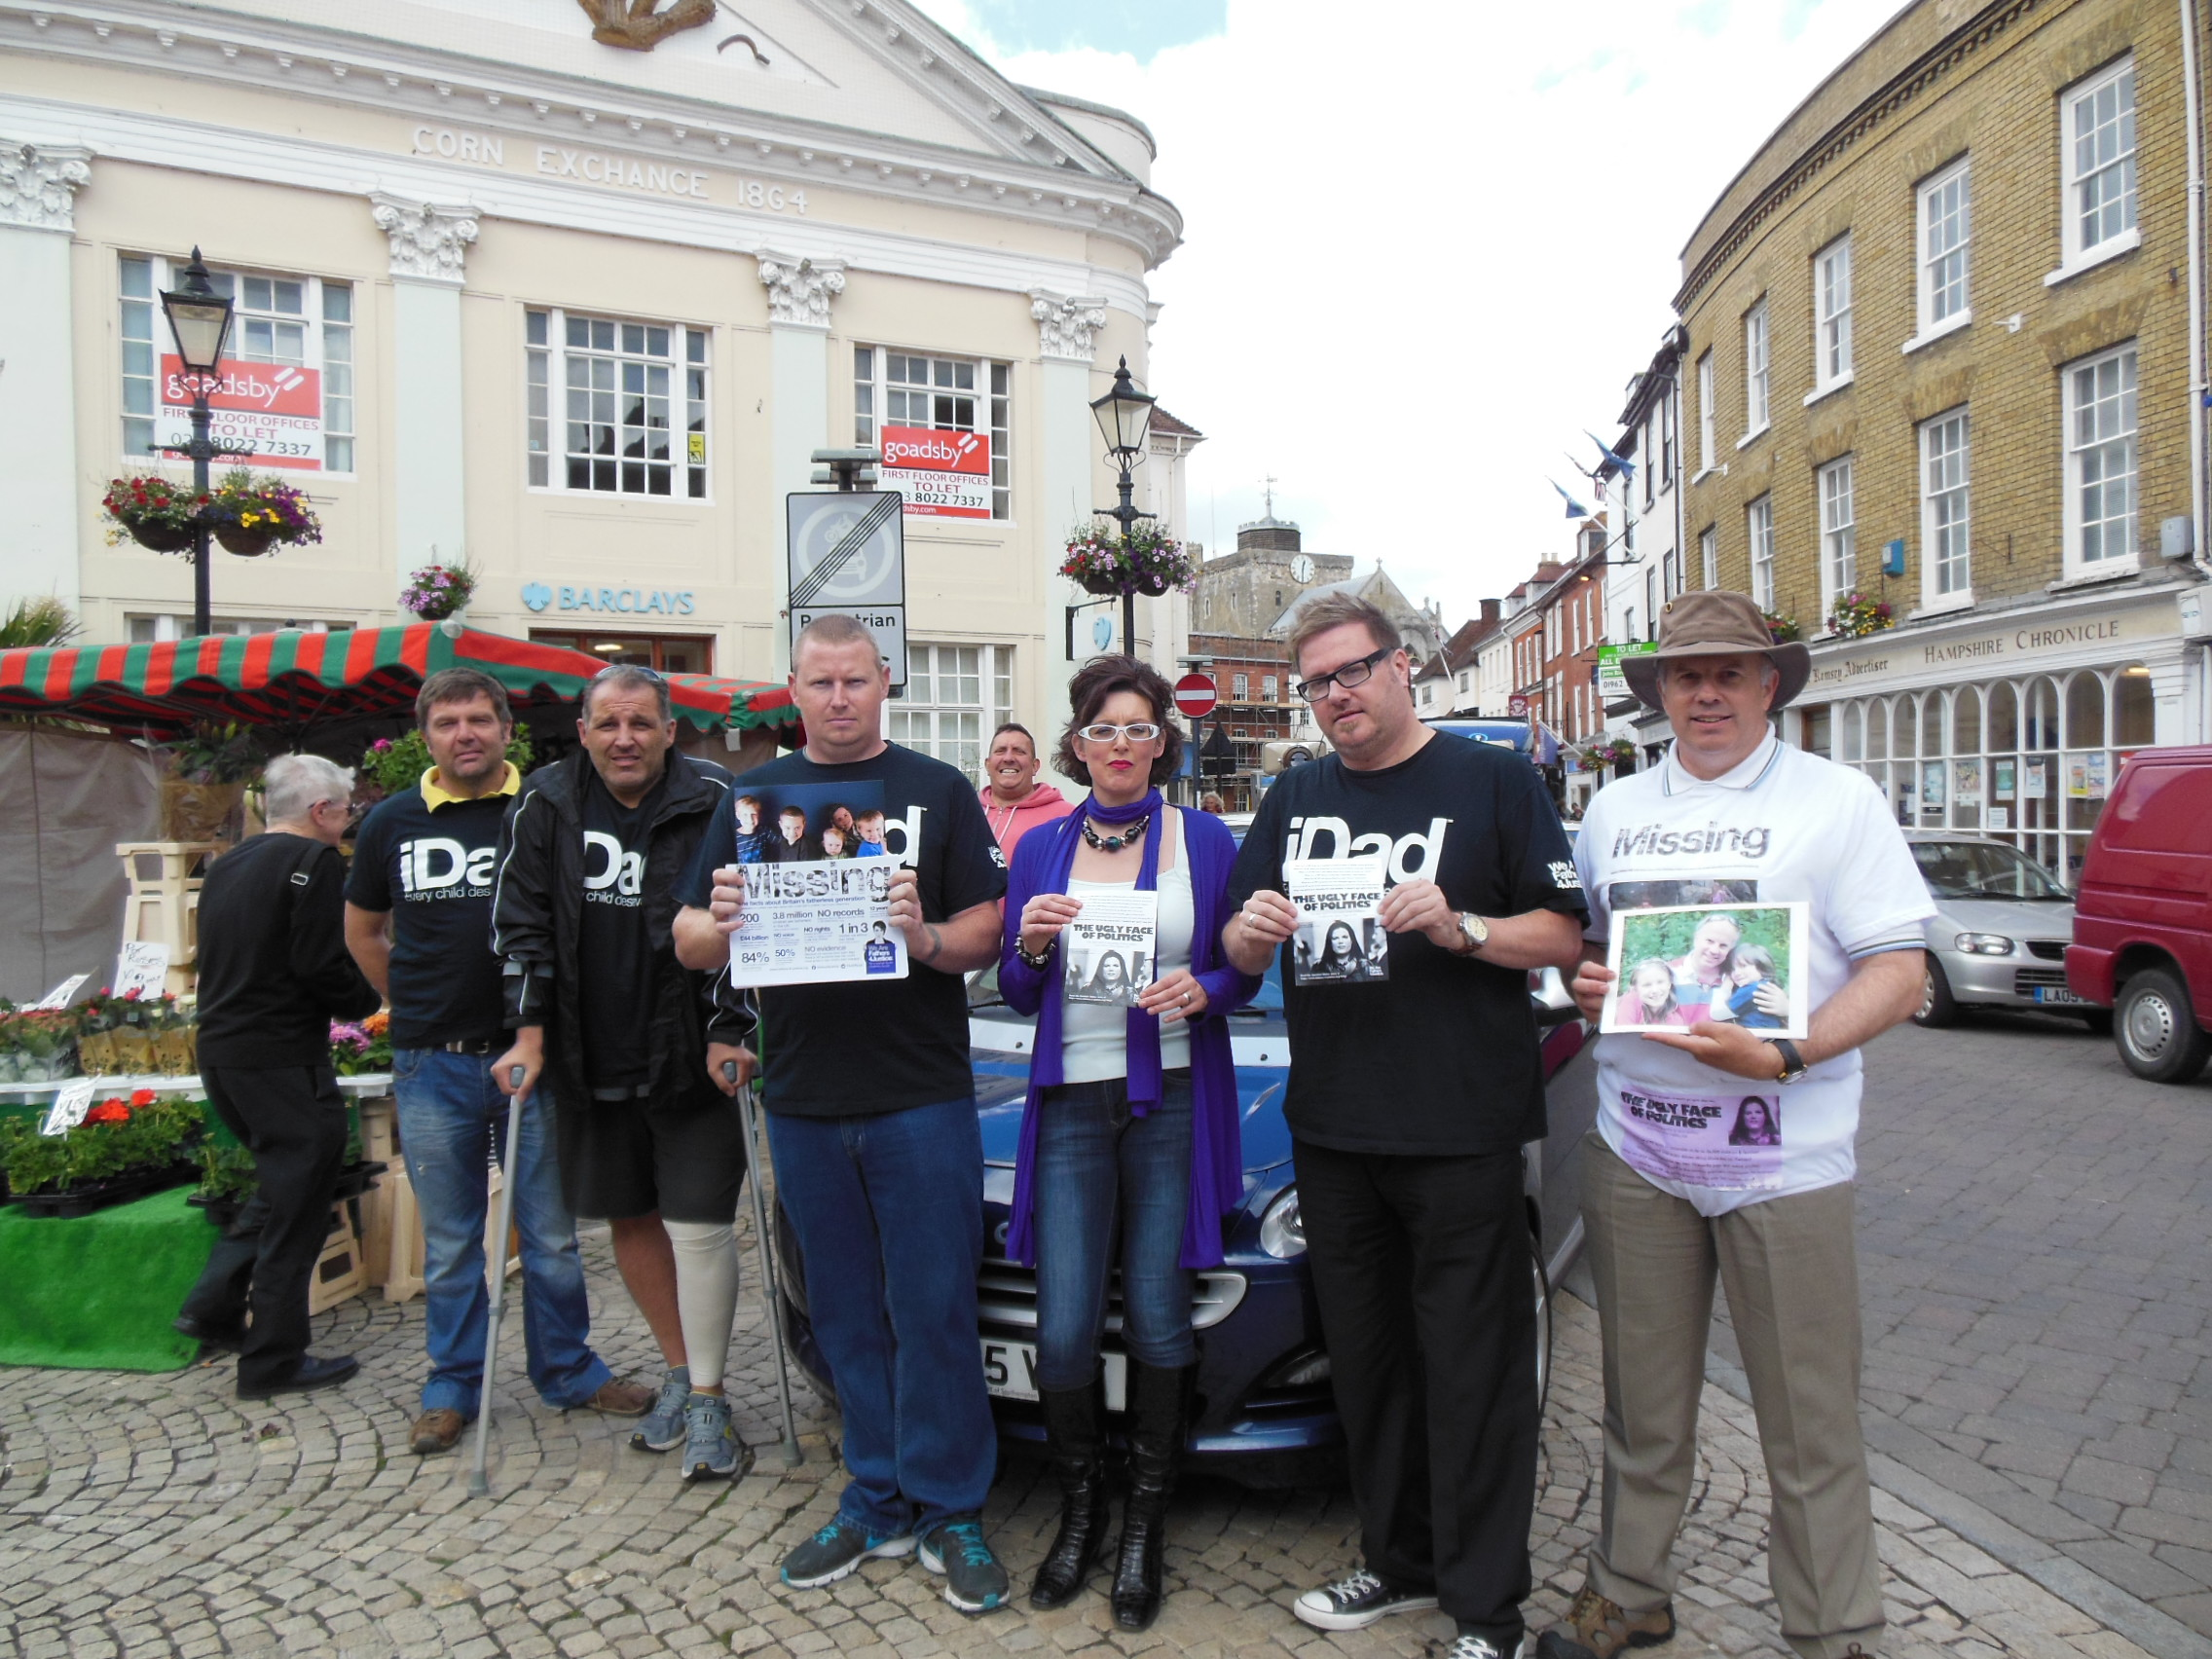 Fathers4Justice protest at MP's 'broken promises'